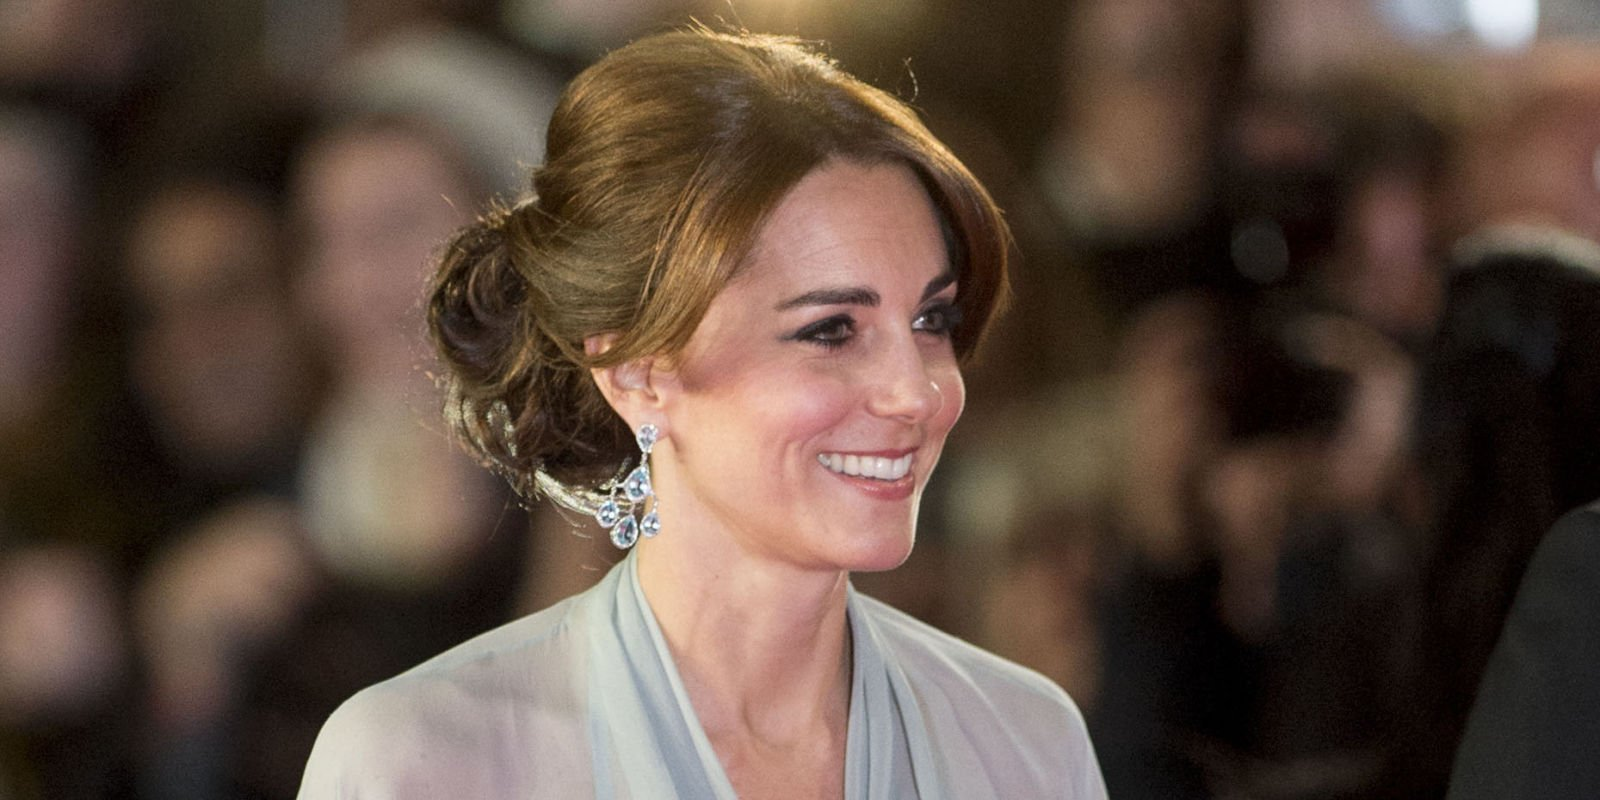 You will NEVER guess who Kate Middleton is getting style advice from: https://t.co/GHVyc30iNQ https://t.co/6LTgblcPqG